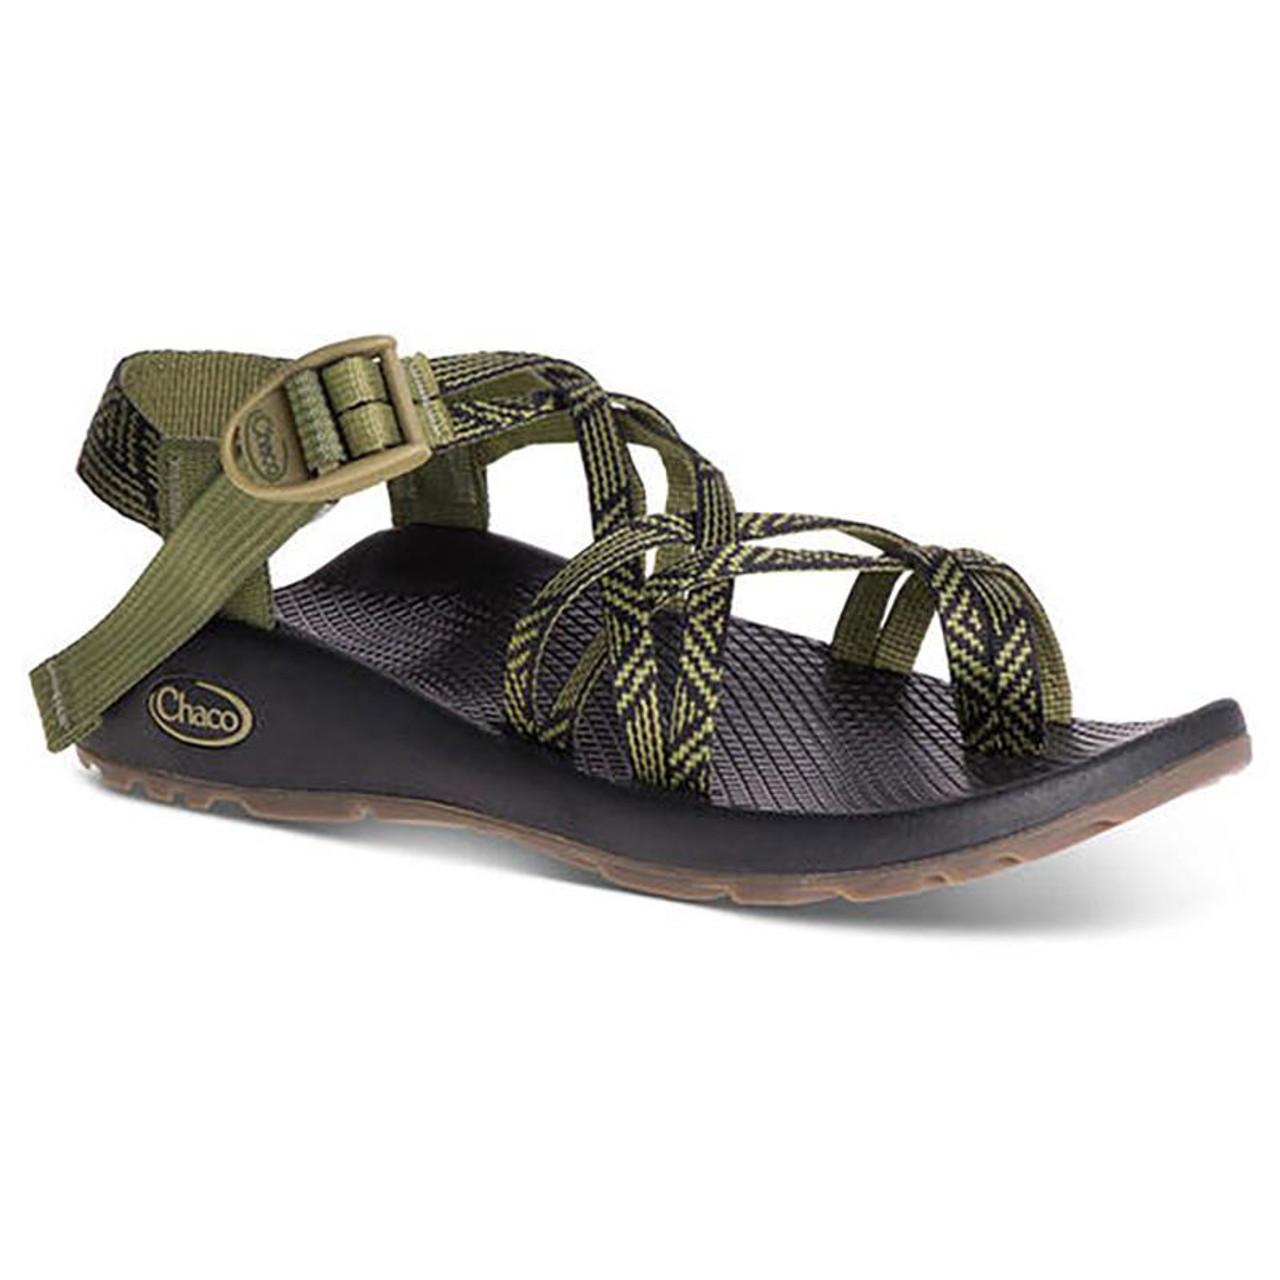 cdaee1c05681 Chaco Women s Sandal - ZX 2 Classic - Palm Avocado - Surf and Dirt